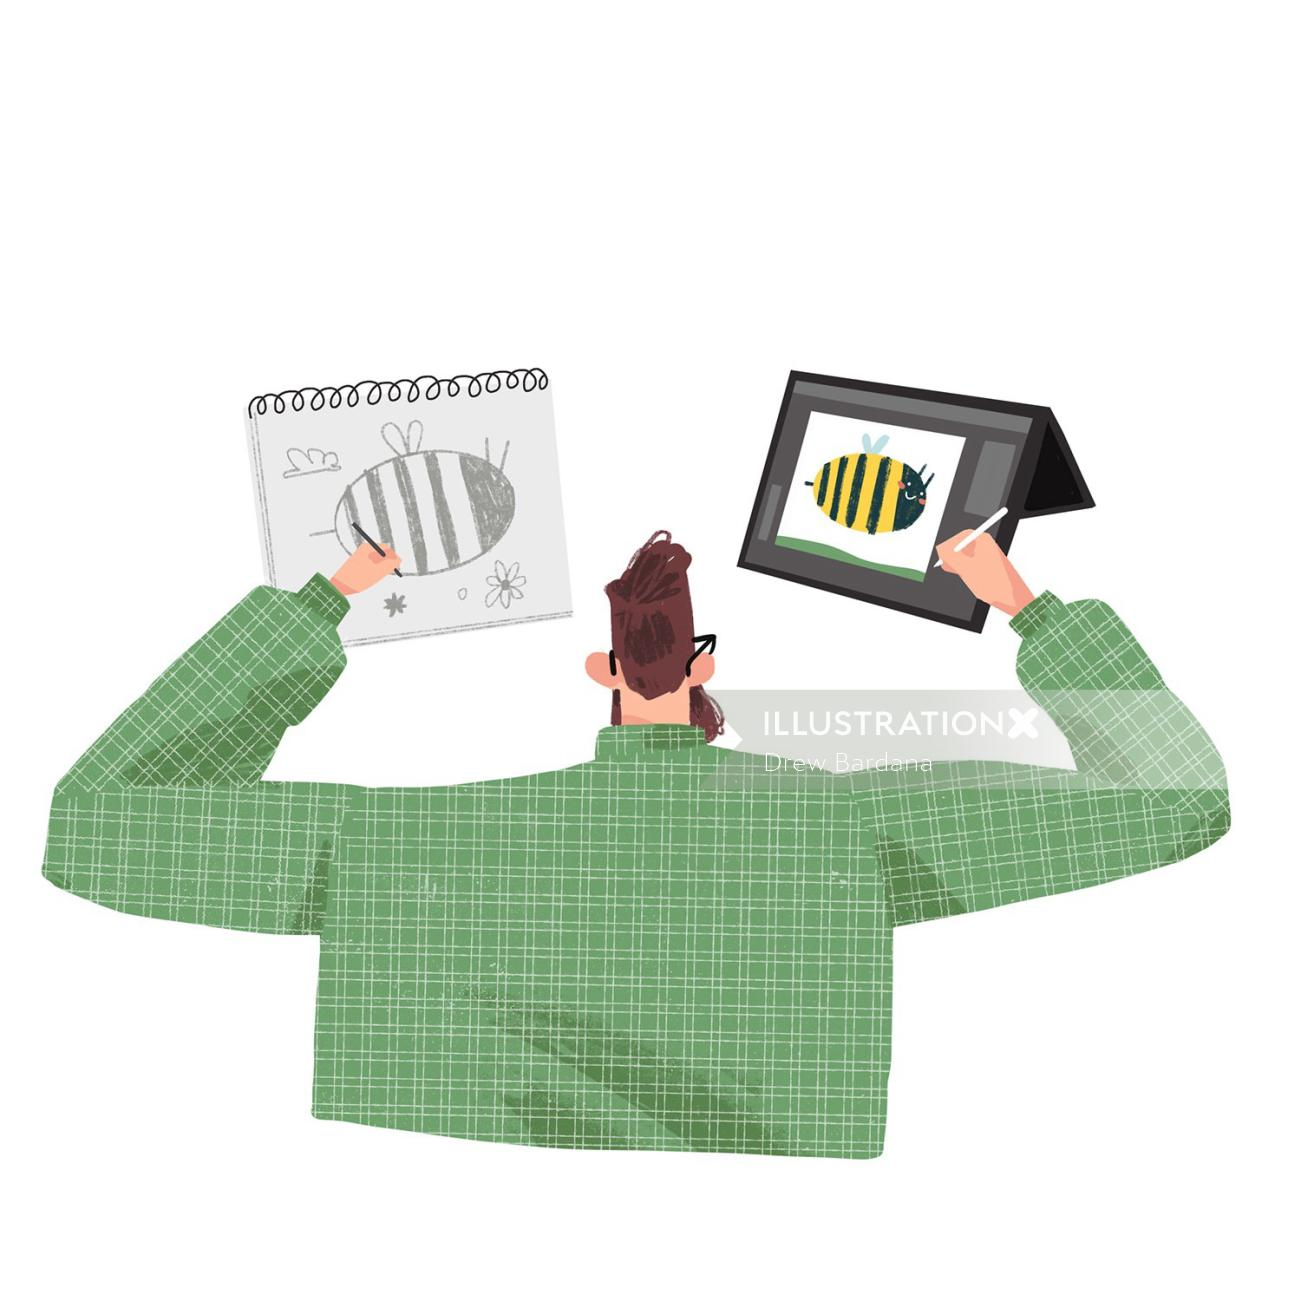 Graphic design of Man drawing on paper and computer tablet.